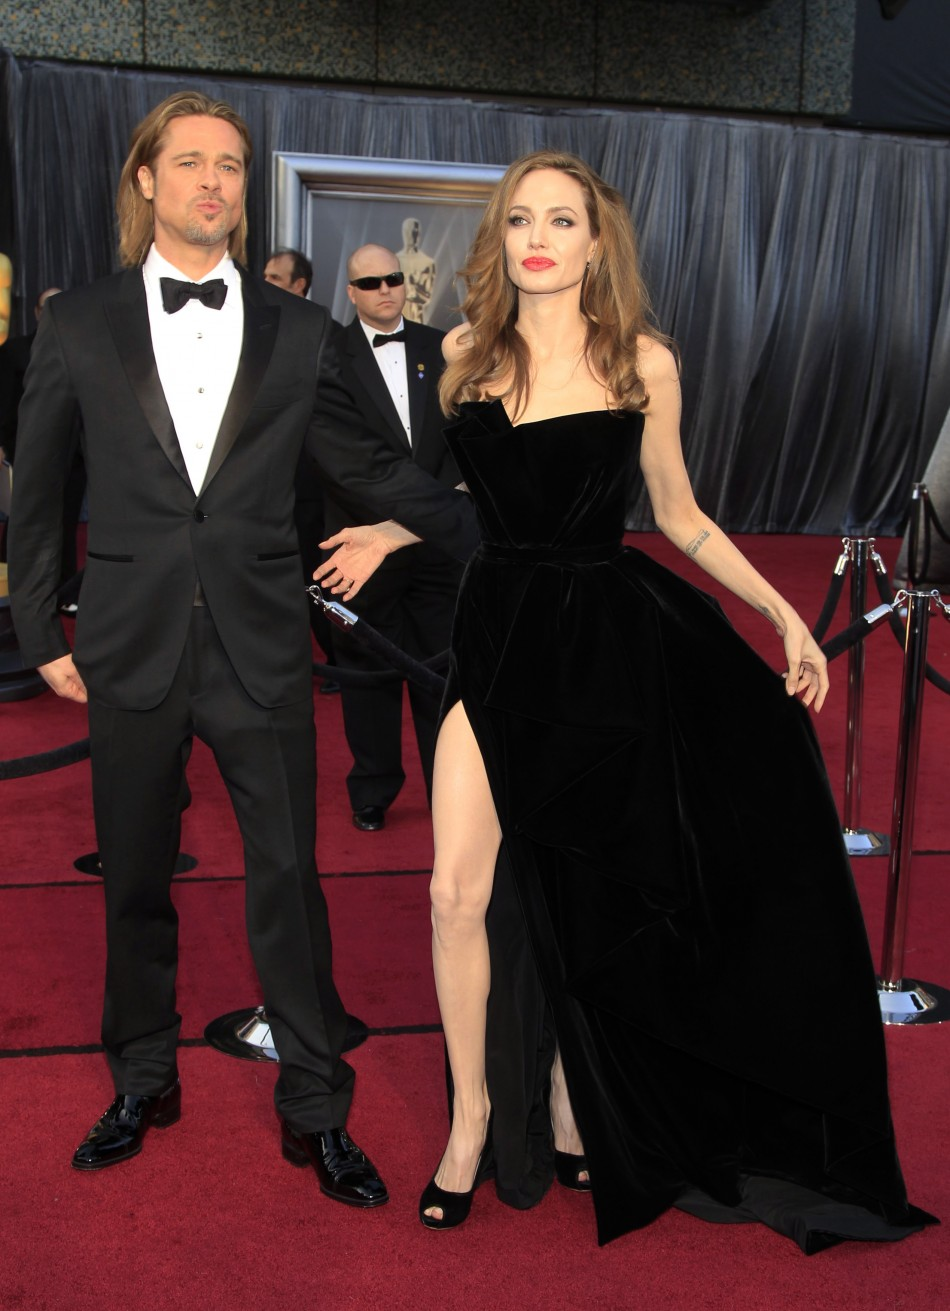 Actor Brad Pitt and his partner, actress Angelina Jolie, arrive at the 84th Academy Awards in Hollywood